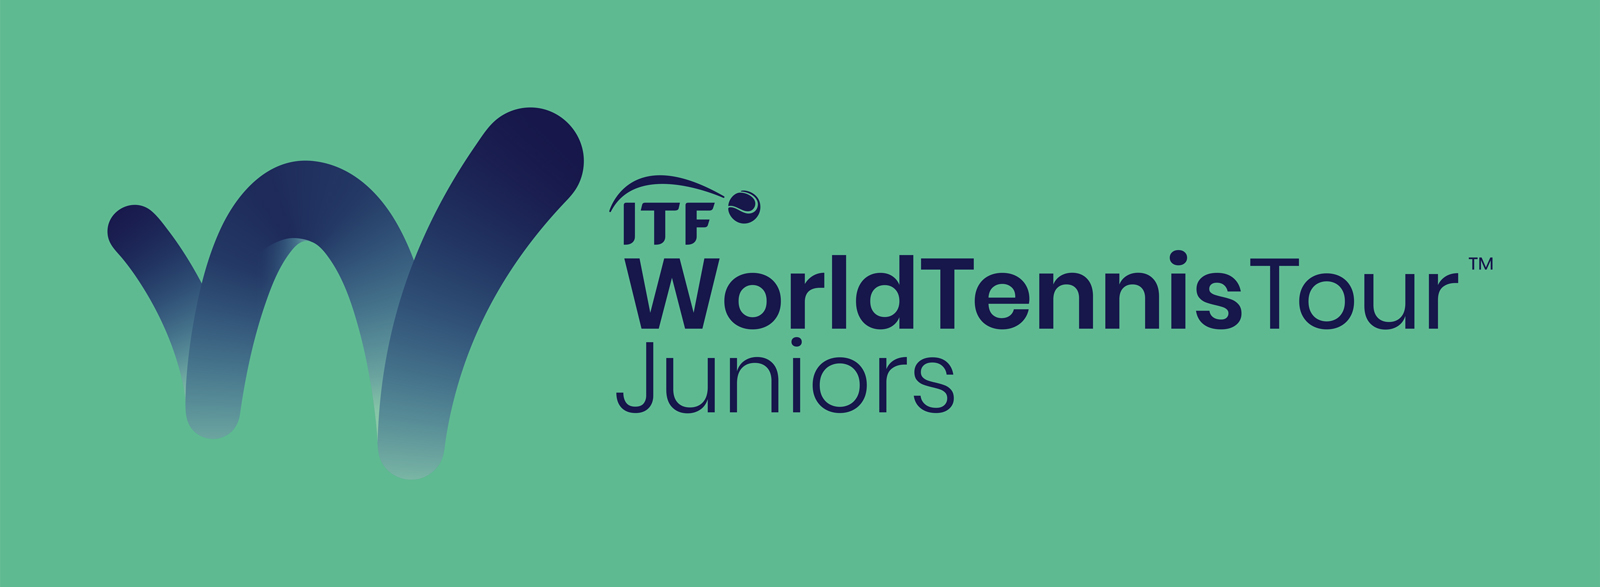 ITF World Tennis Tour Juniors logo